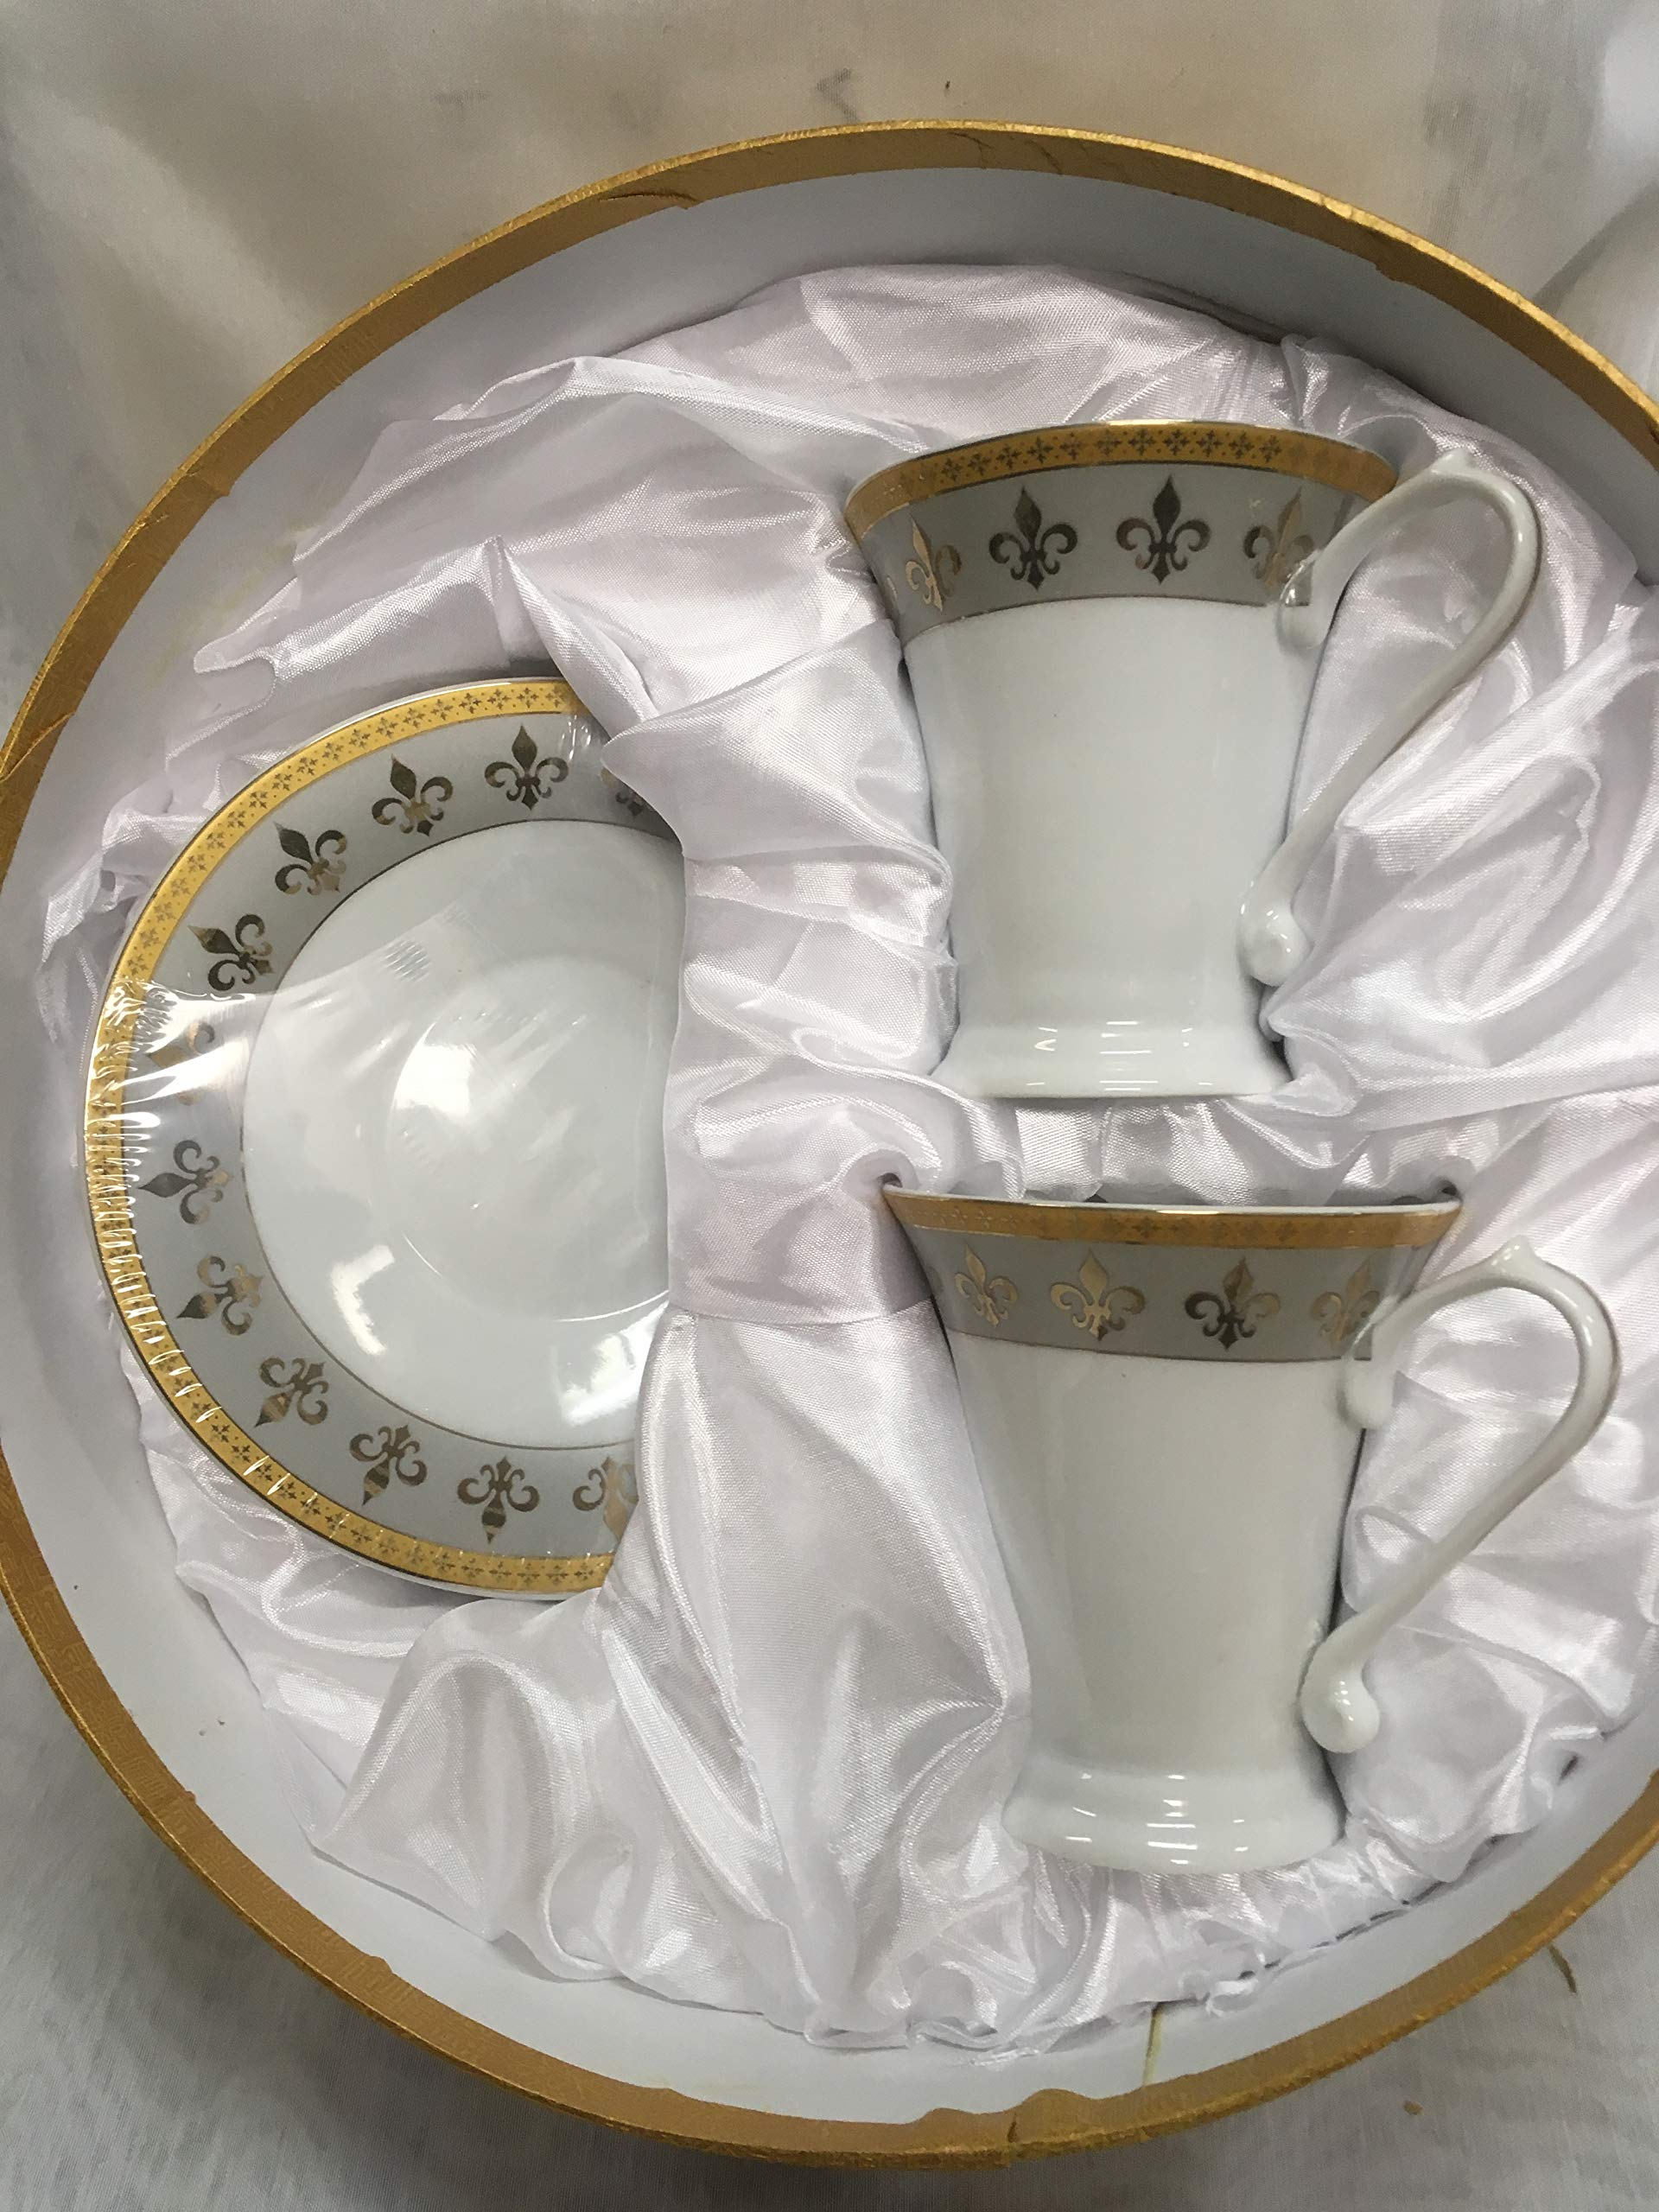 Royalty Porcelain 4-pc Fleur-de-Lis Tea or Coffee Set, Two 24K Gold-Plated Cups and Saucers, Bone China Tableware